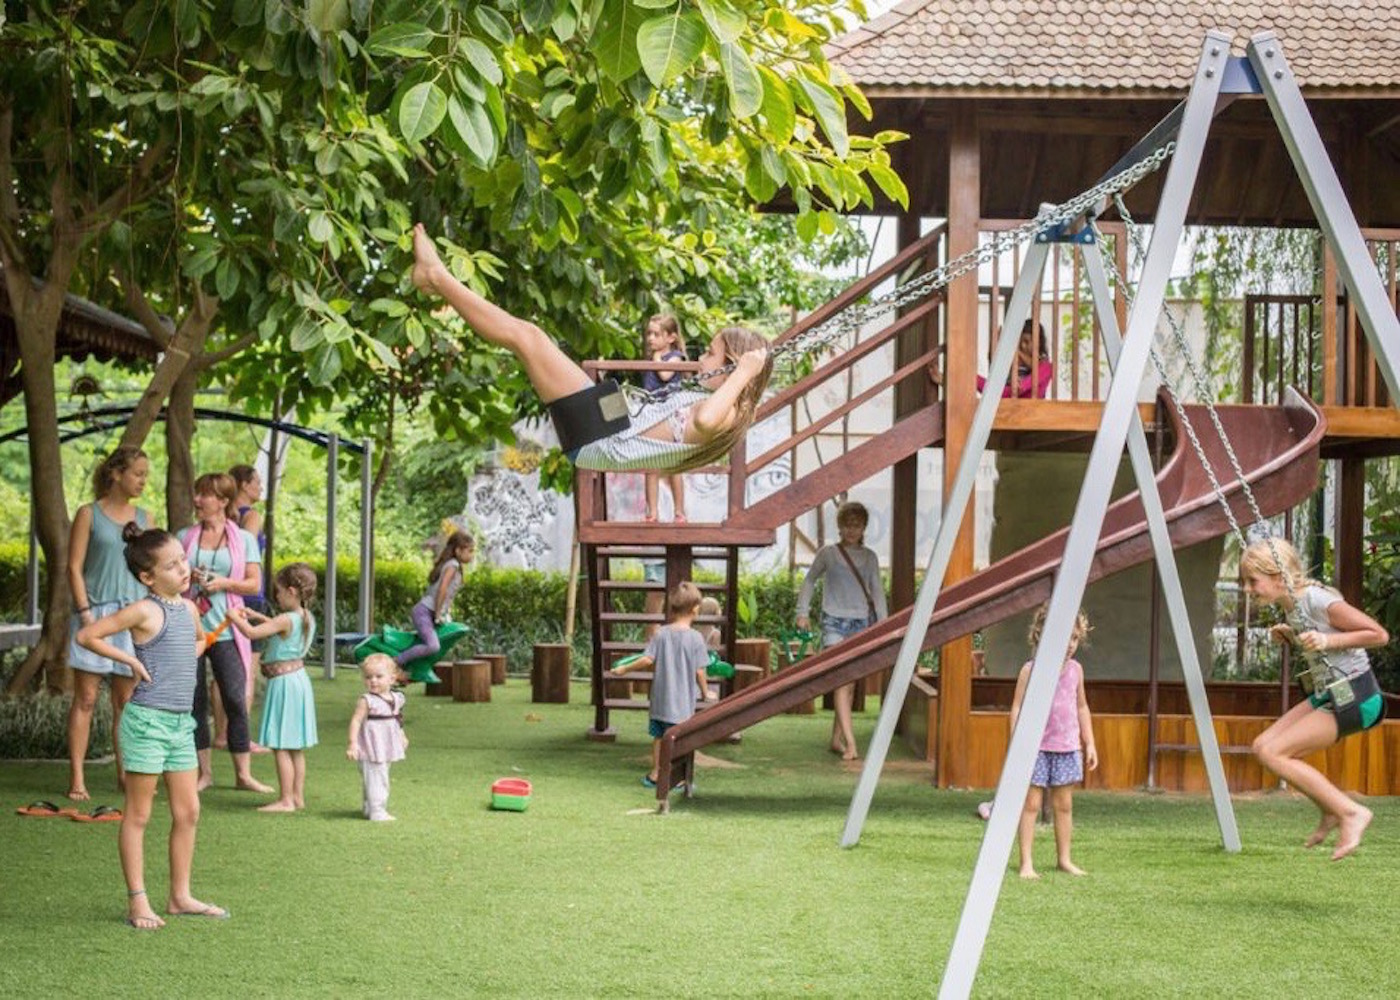 Kids playground at Made's Warung - a family-friendly restaurant in Canggu, Bali, Indonesia